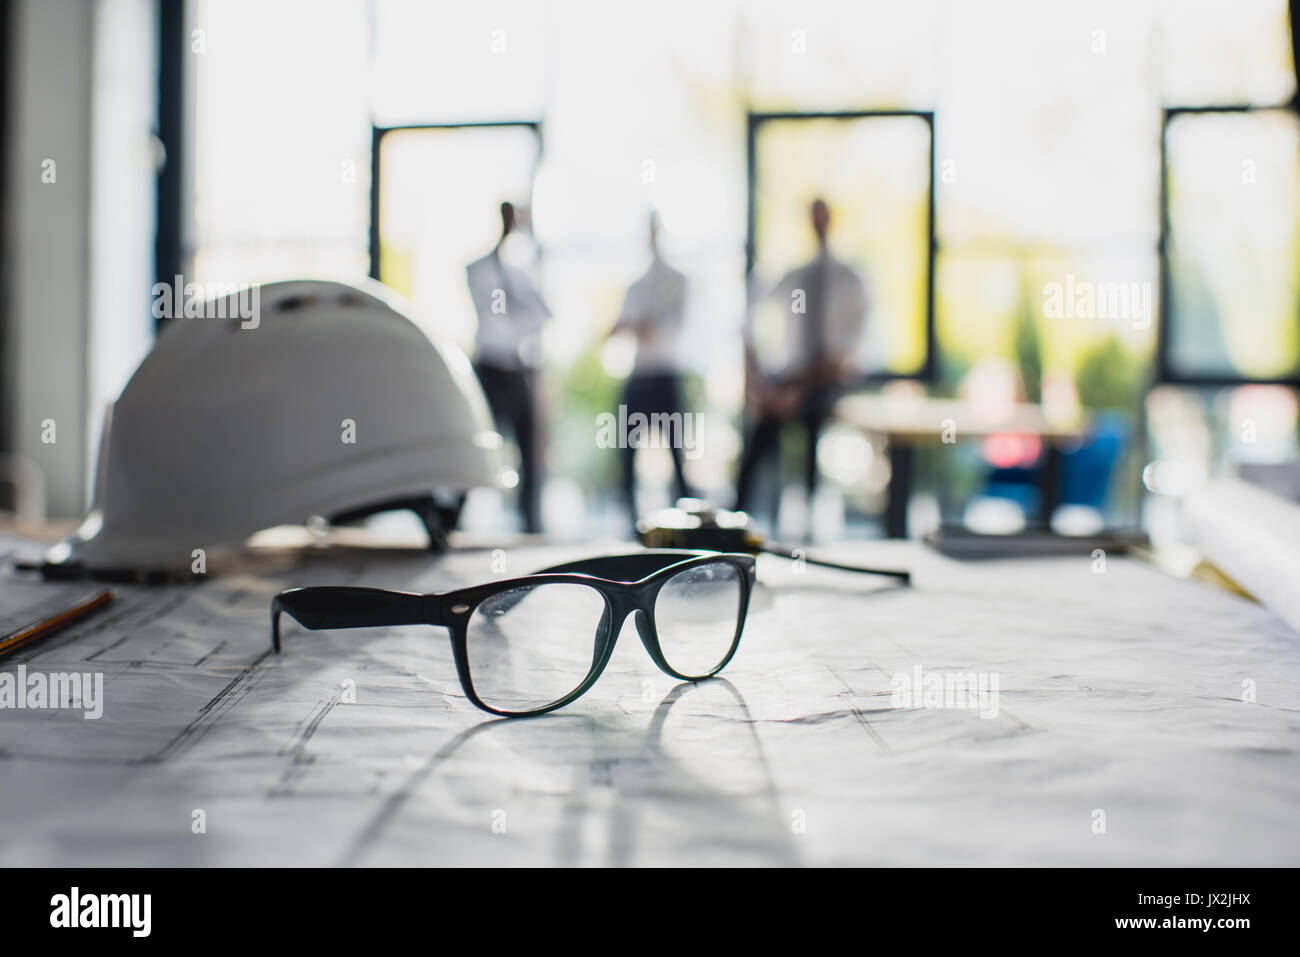 various architecture supplies on workplace with architects behind, focus on foreground  - Stock Image